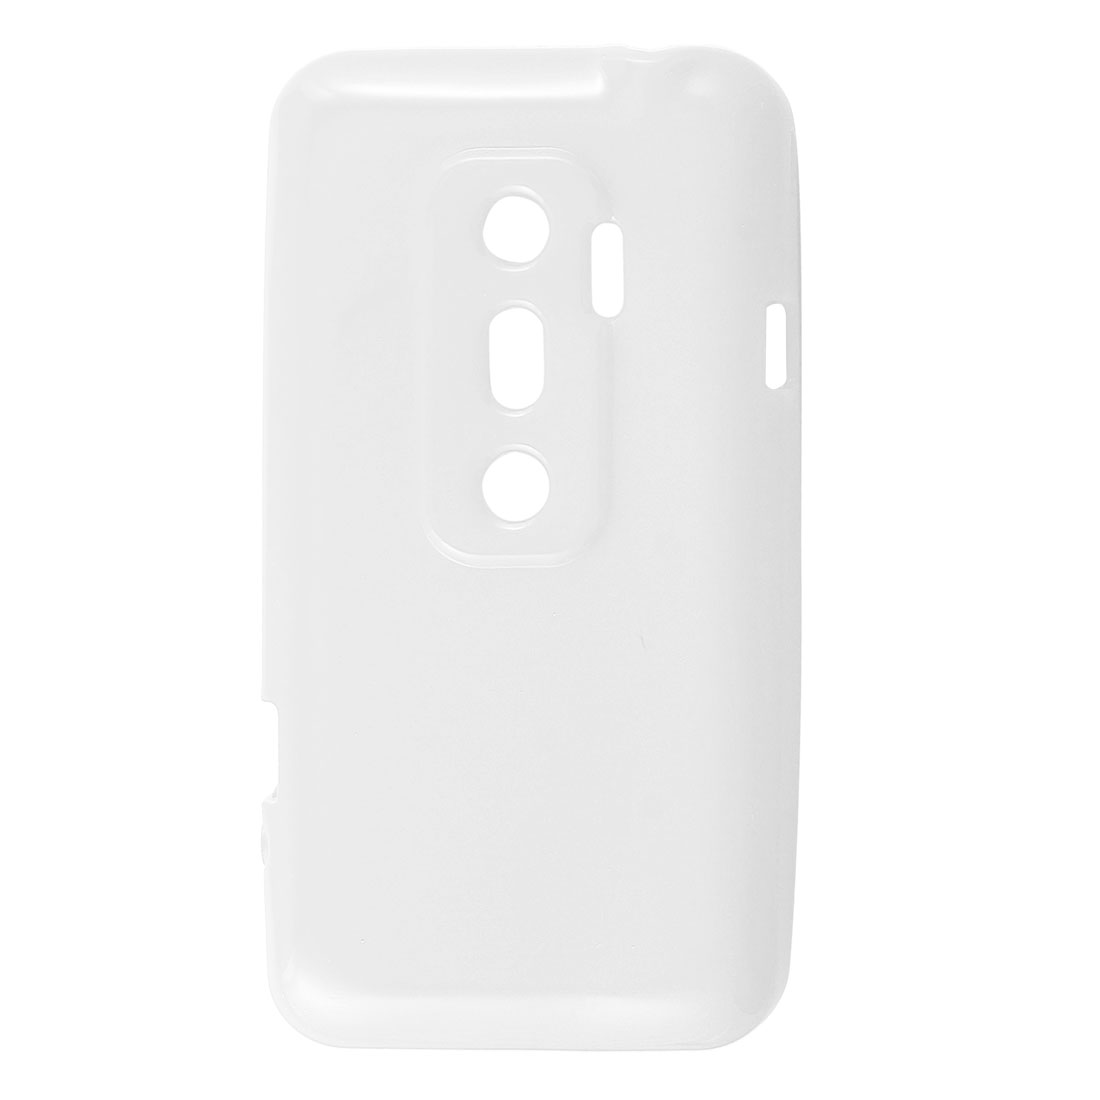 White Protective Soft Plastic Case Cover for HTC EVO 3D G17